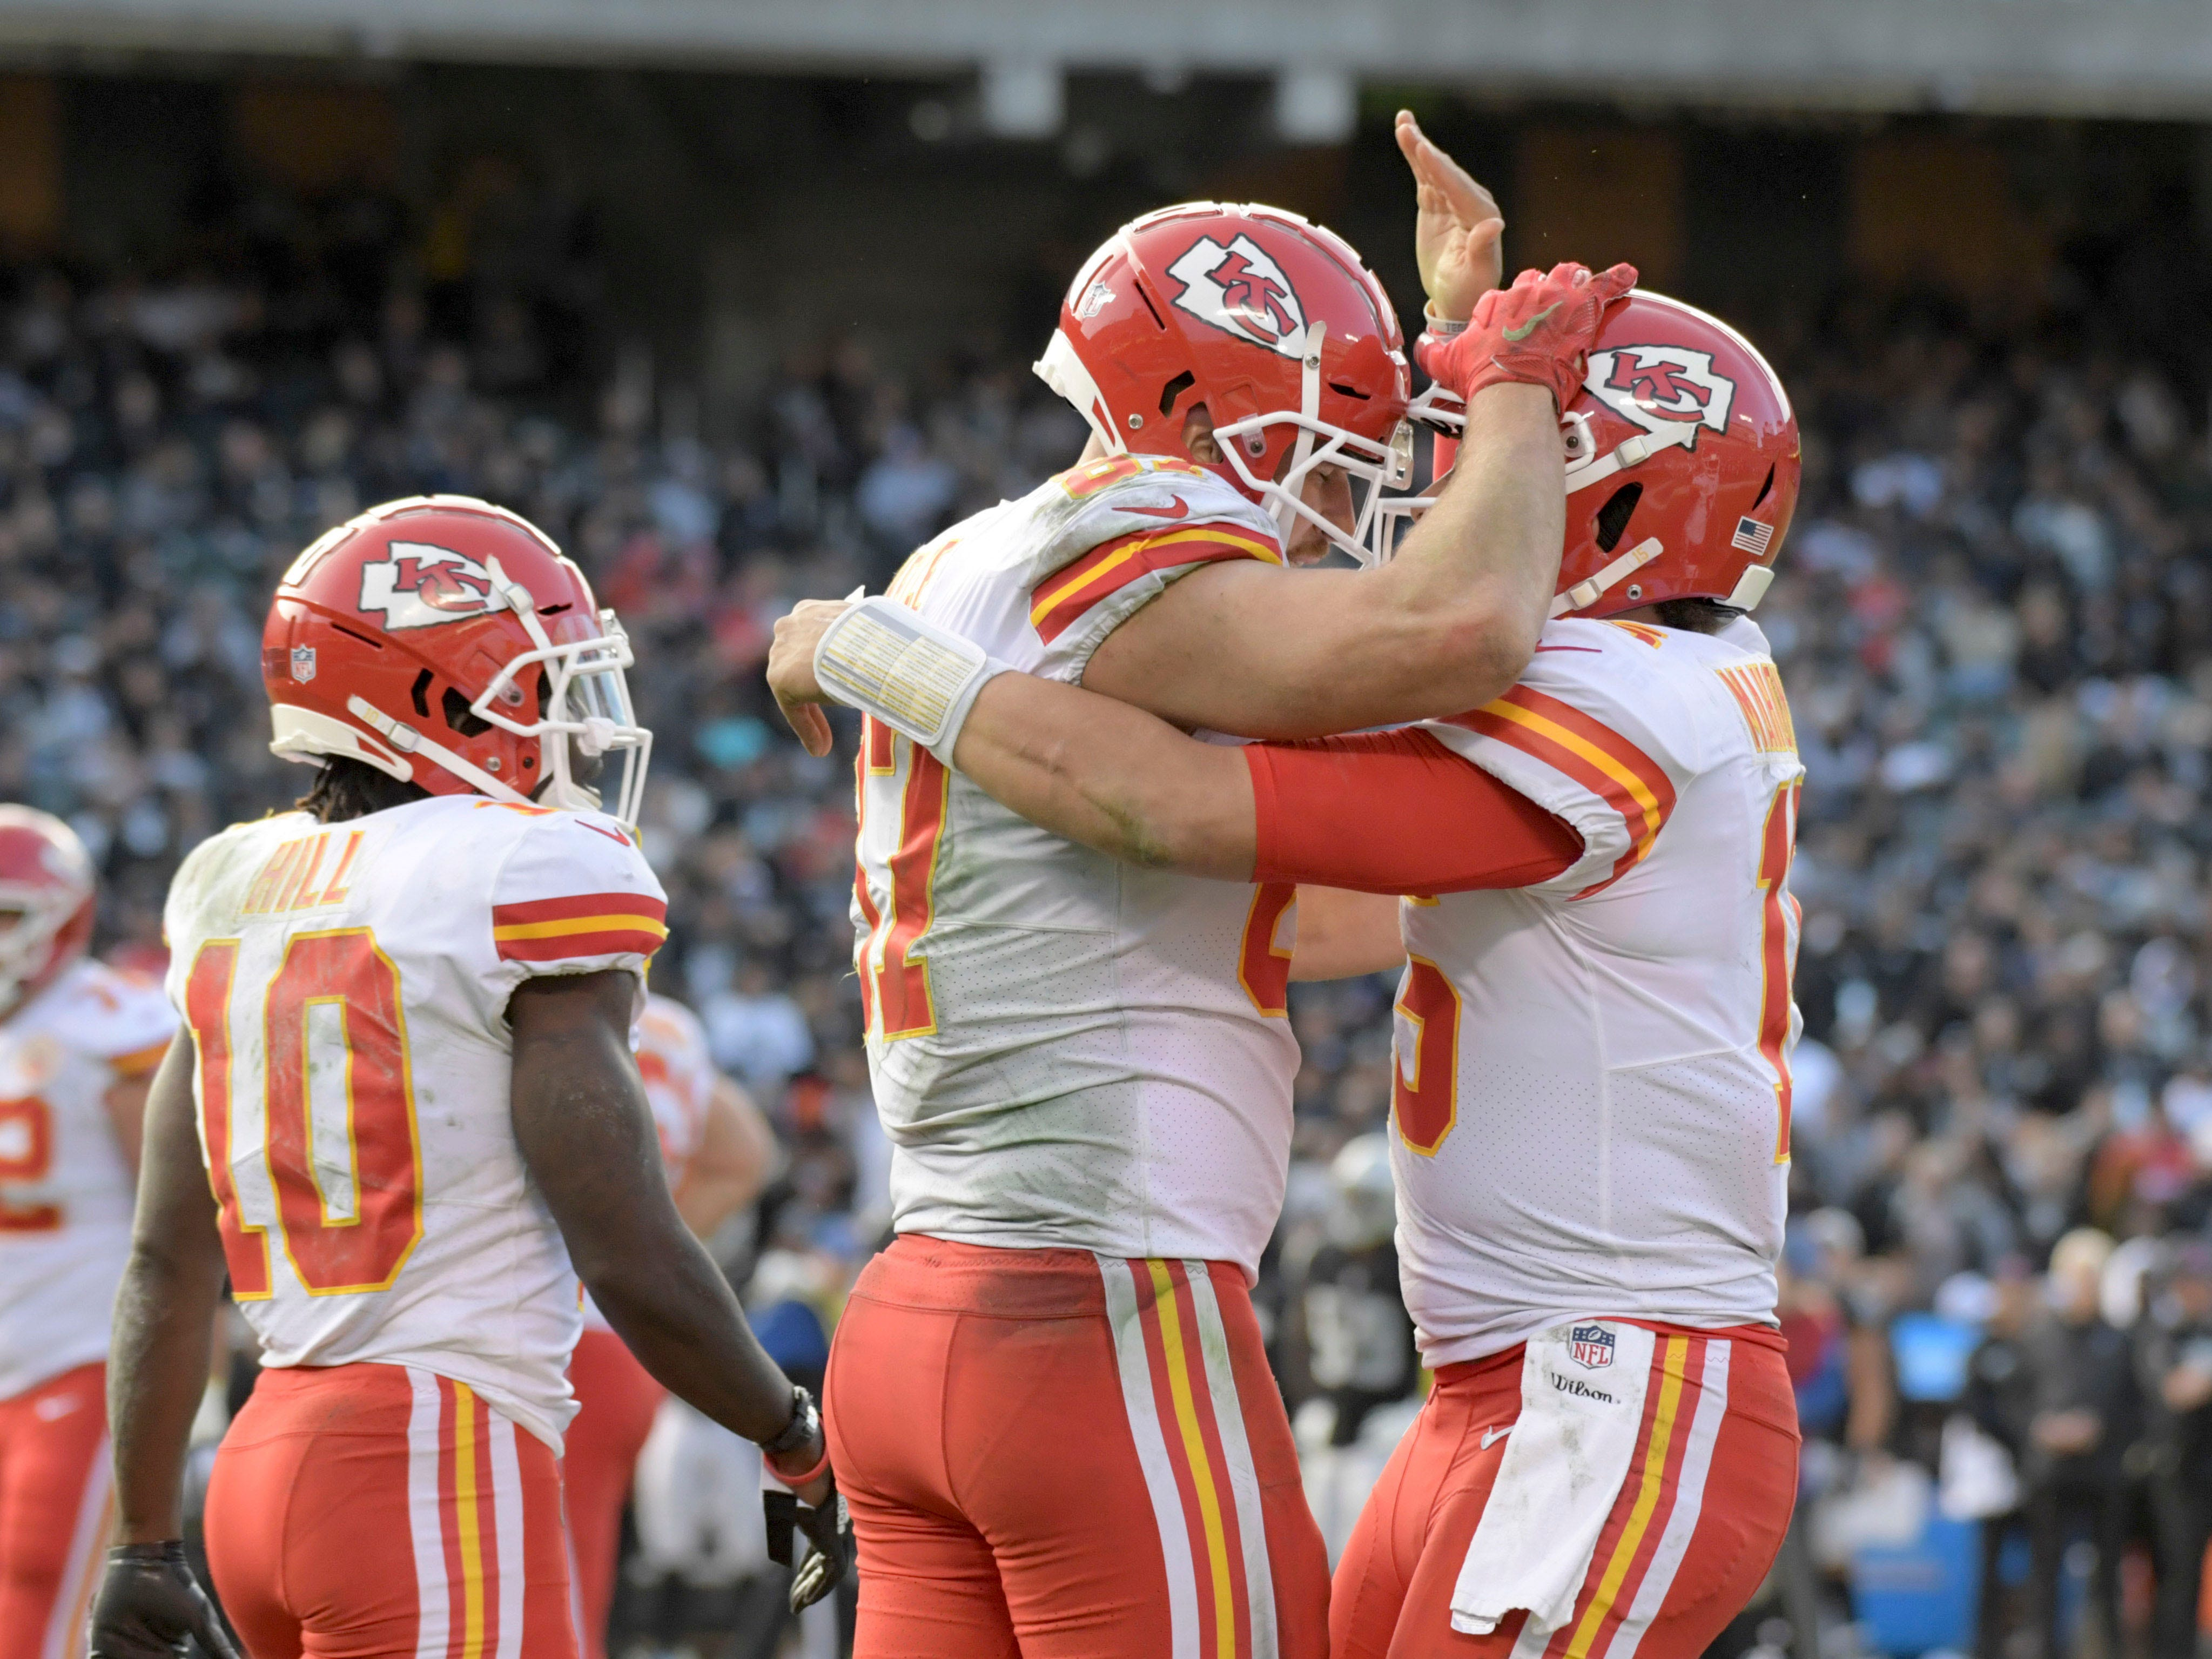 2. Chiefs (10-2) | Last game: Defeated the Raiders, 40-33 | Previous ranking: 3 | The buzz: Bold move by Chiefs to waive Kareem Hunt, but the right thing to do given the circumstances.